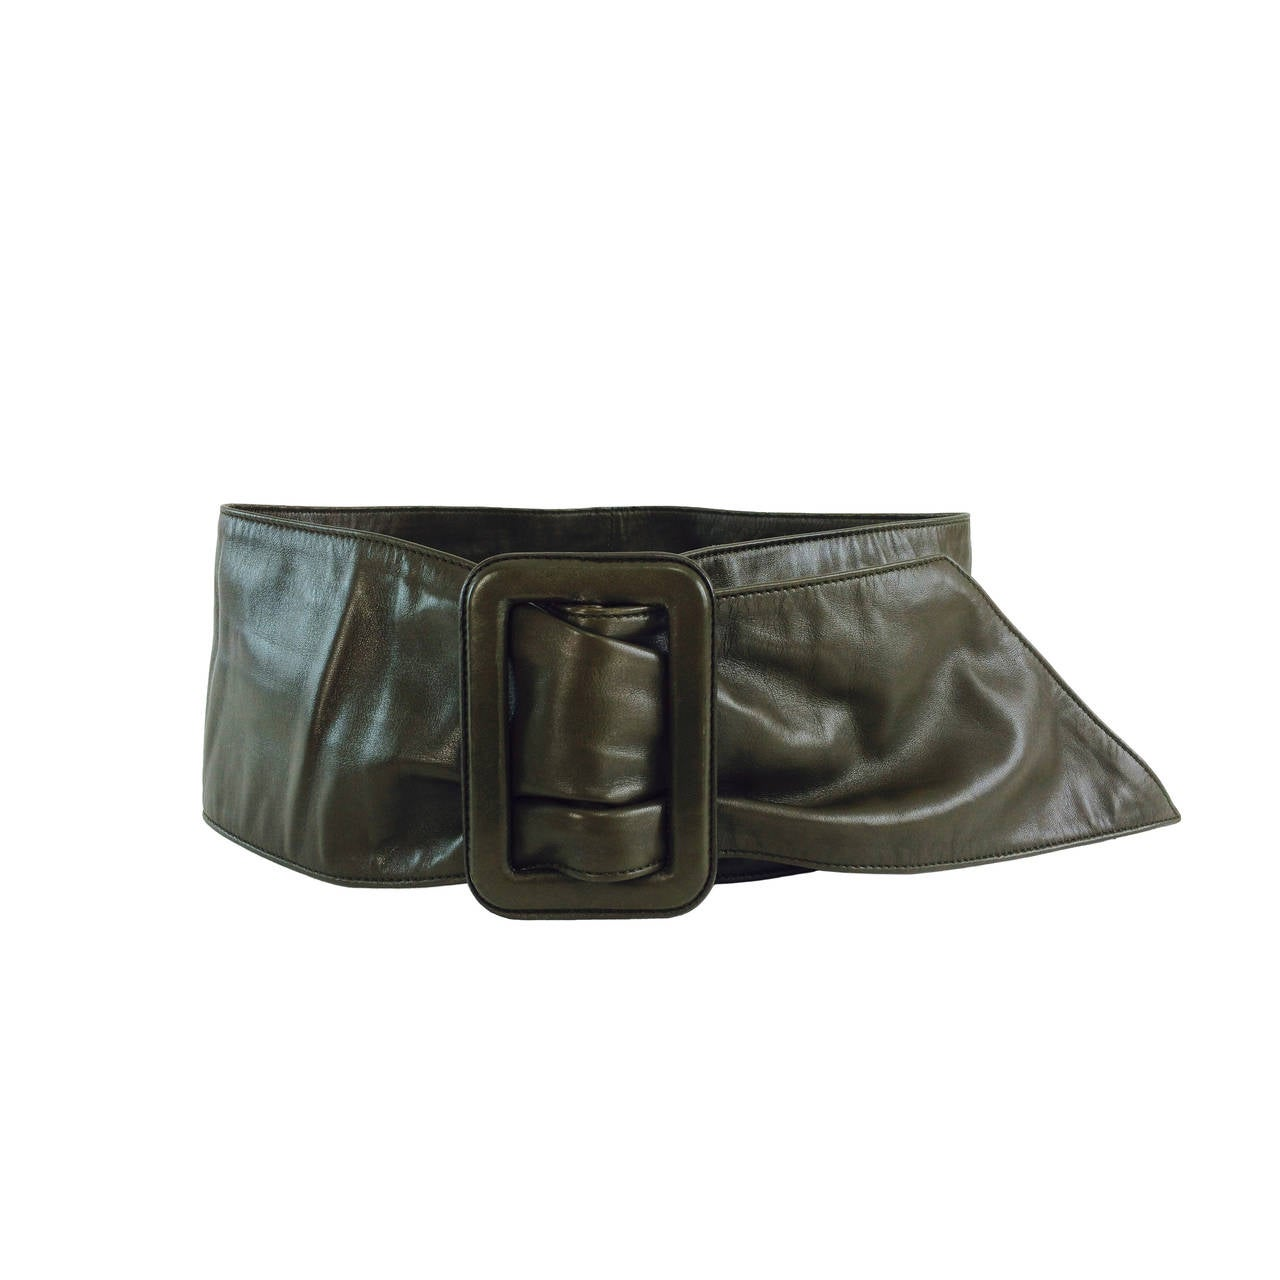 Prada buttery soft wide leather contour belt 36 For Sale at 1stdibs